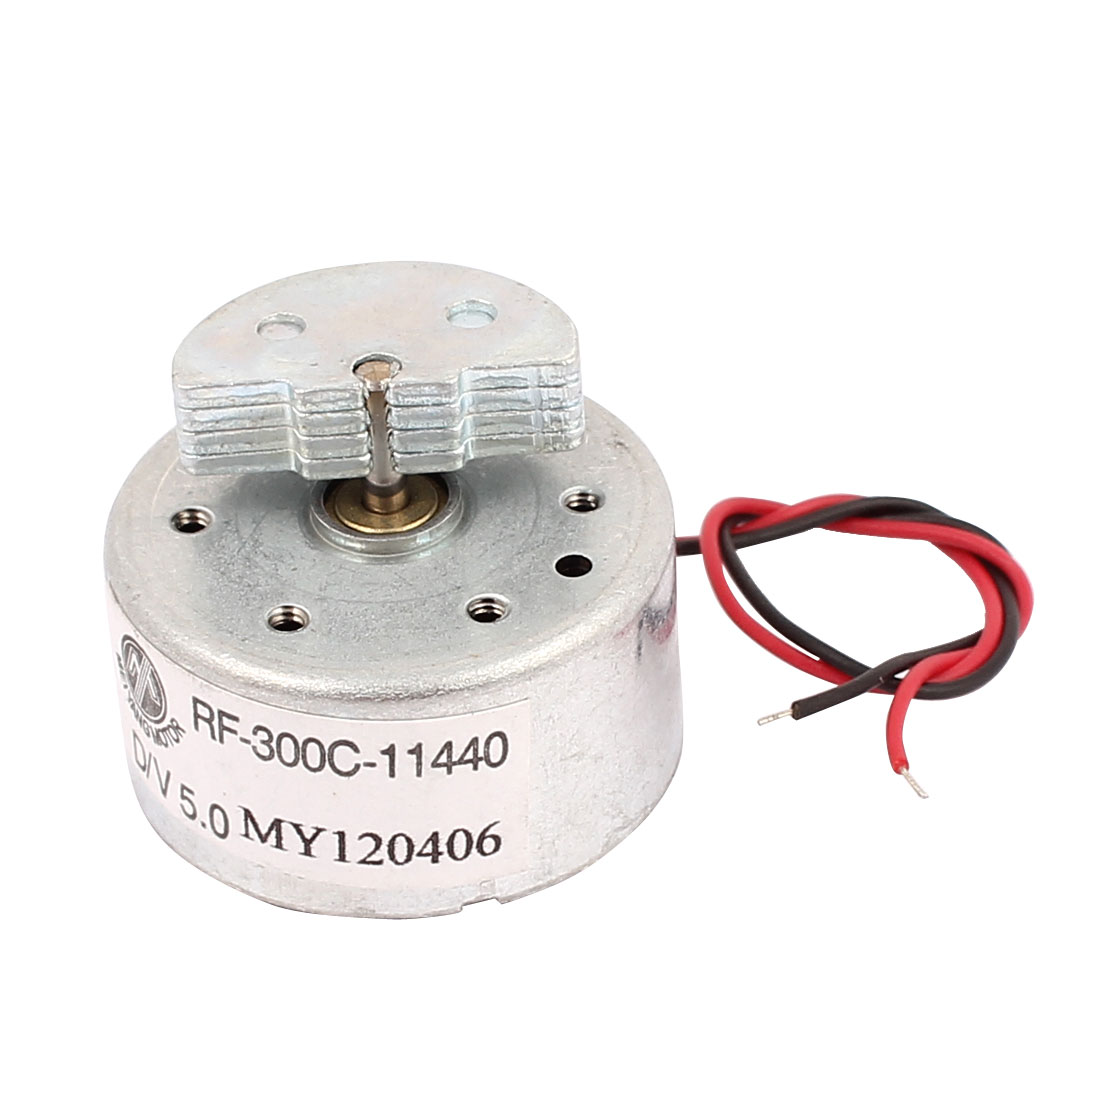 D-Shape-Shaft-3000R-min-Speed-Micro-Vibrating-Vibration-Motor-DC-3-6V